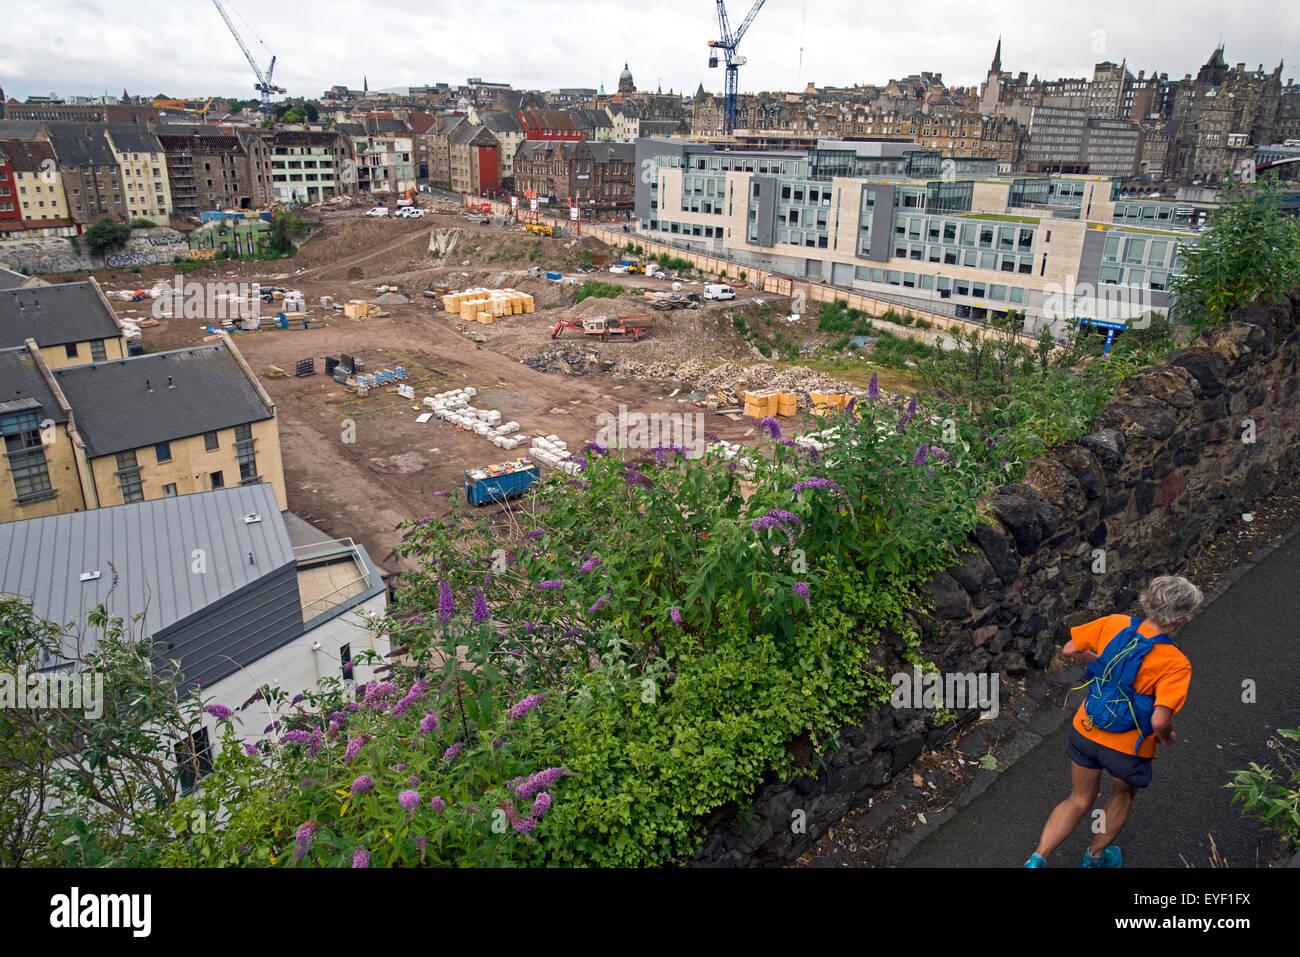 The Caltongate site in Edinburgh's Old Town where work is just beginning on a controversial £150m redevelopment - Stock Image